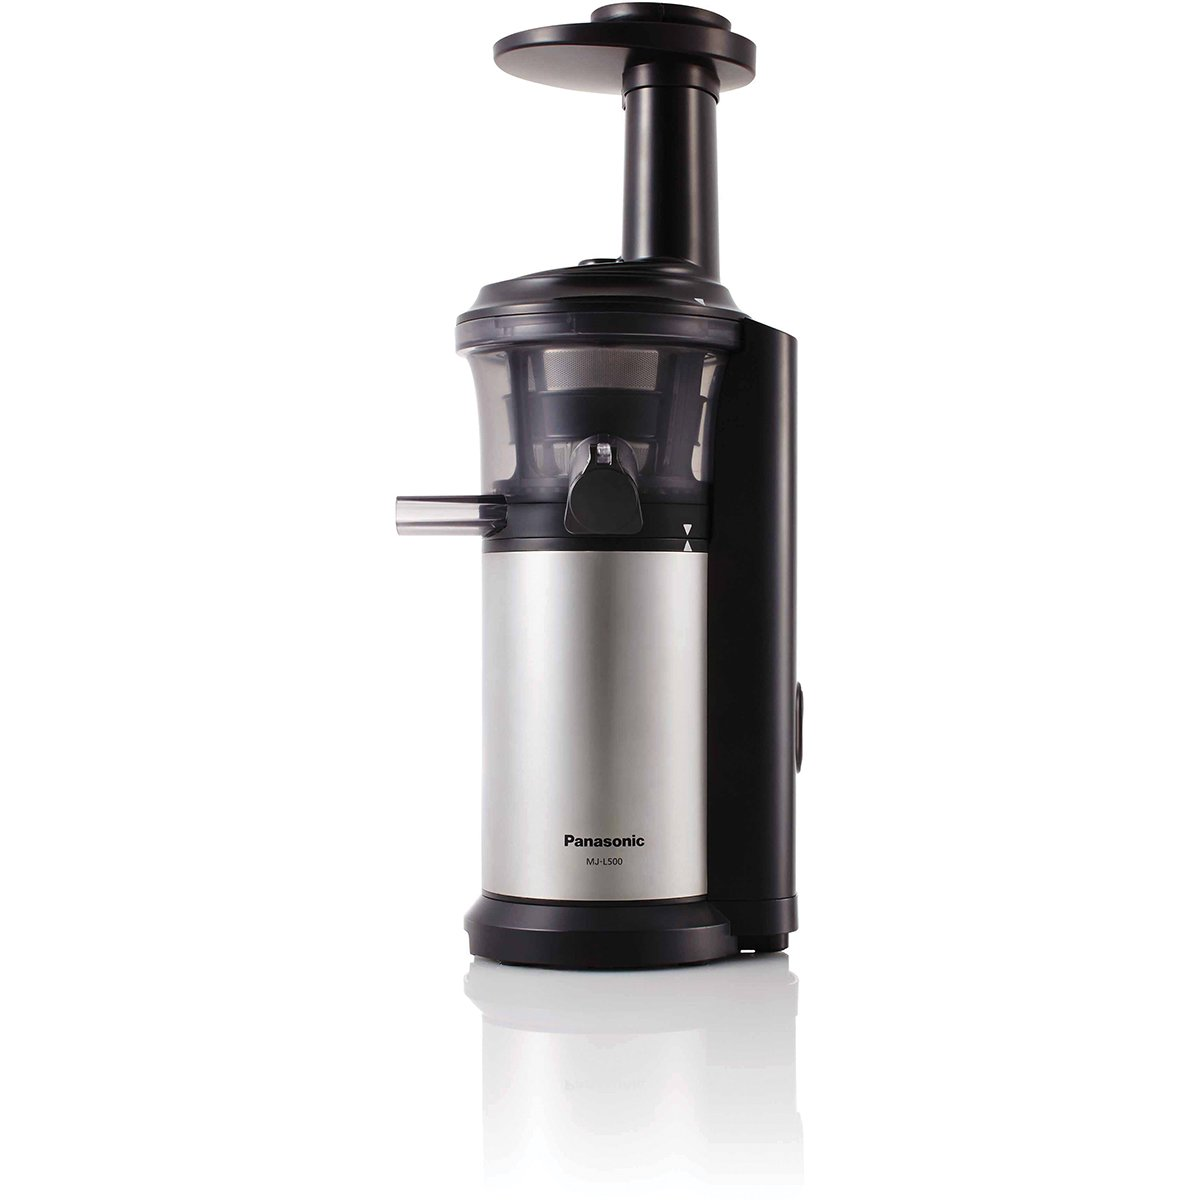 Panasonic Slow Juicer Made In : Panasonic MJ-L500SST Slow Juicer Appliances Online